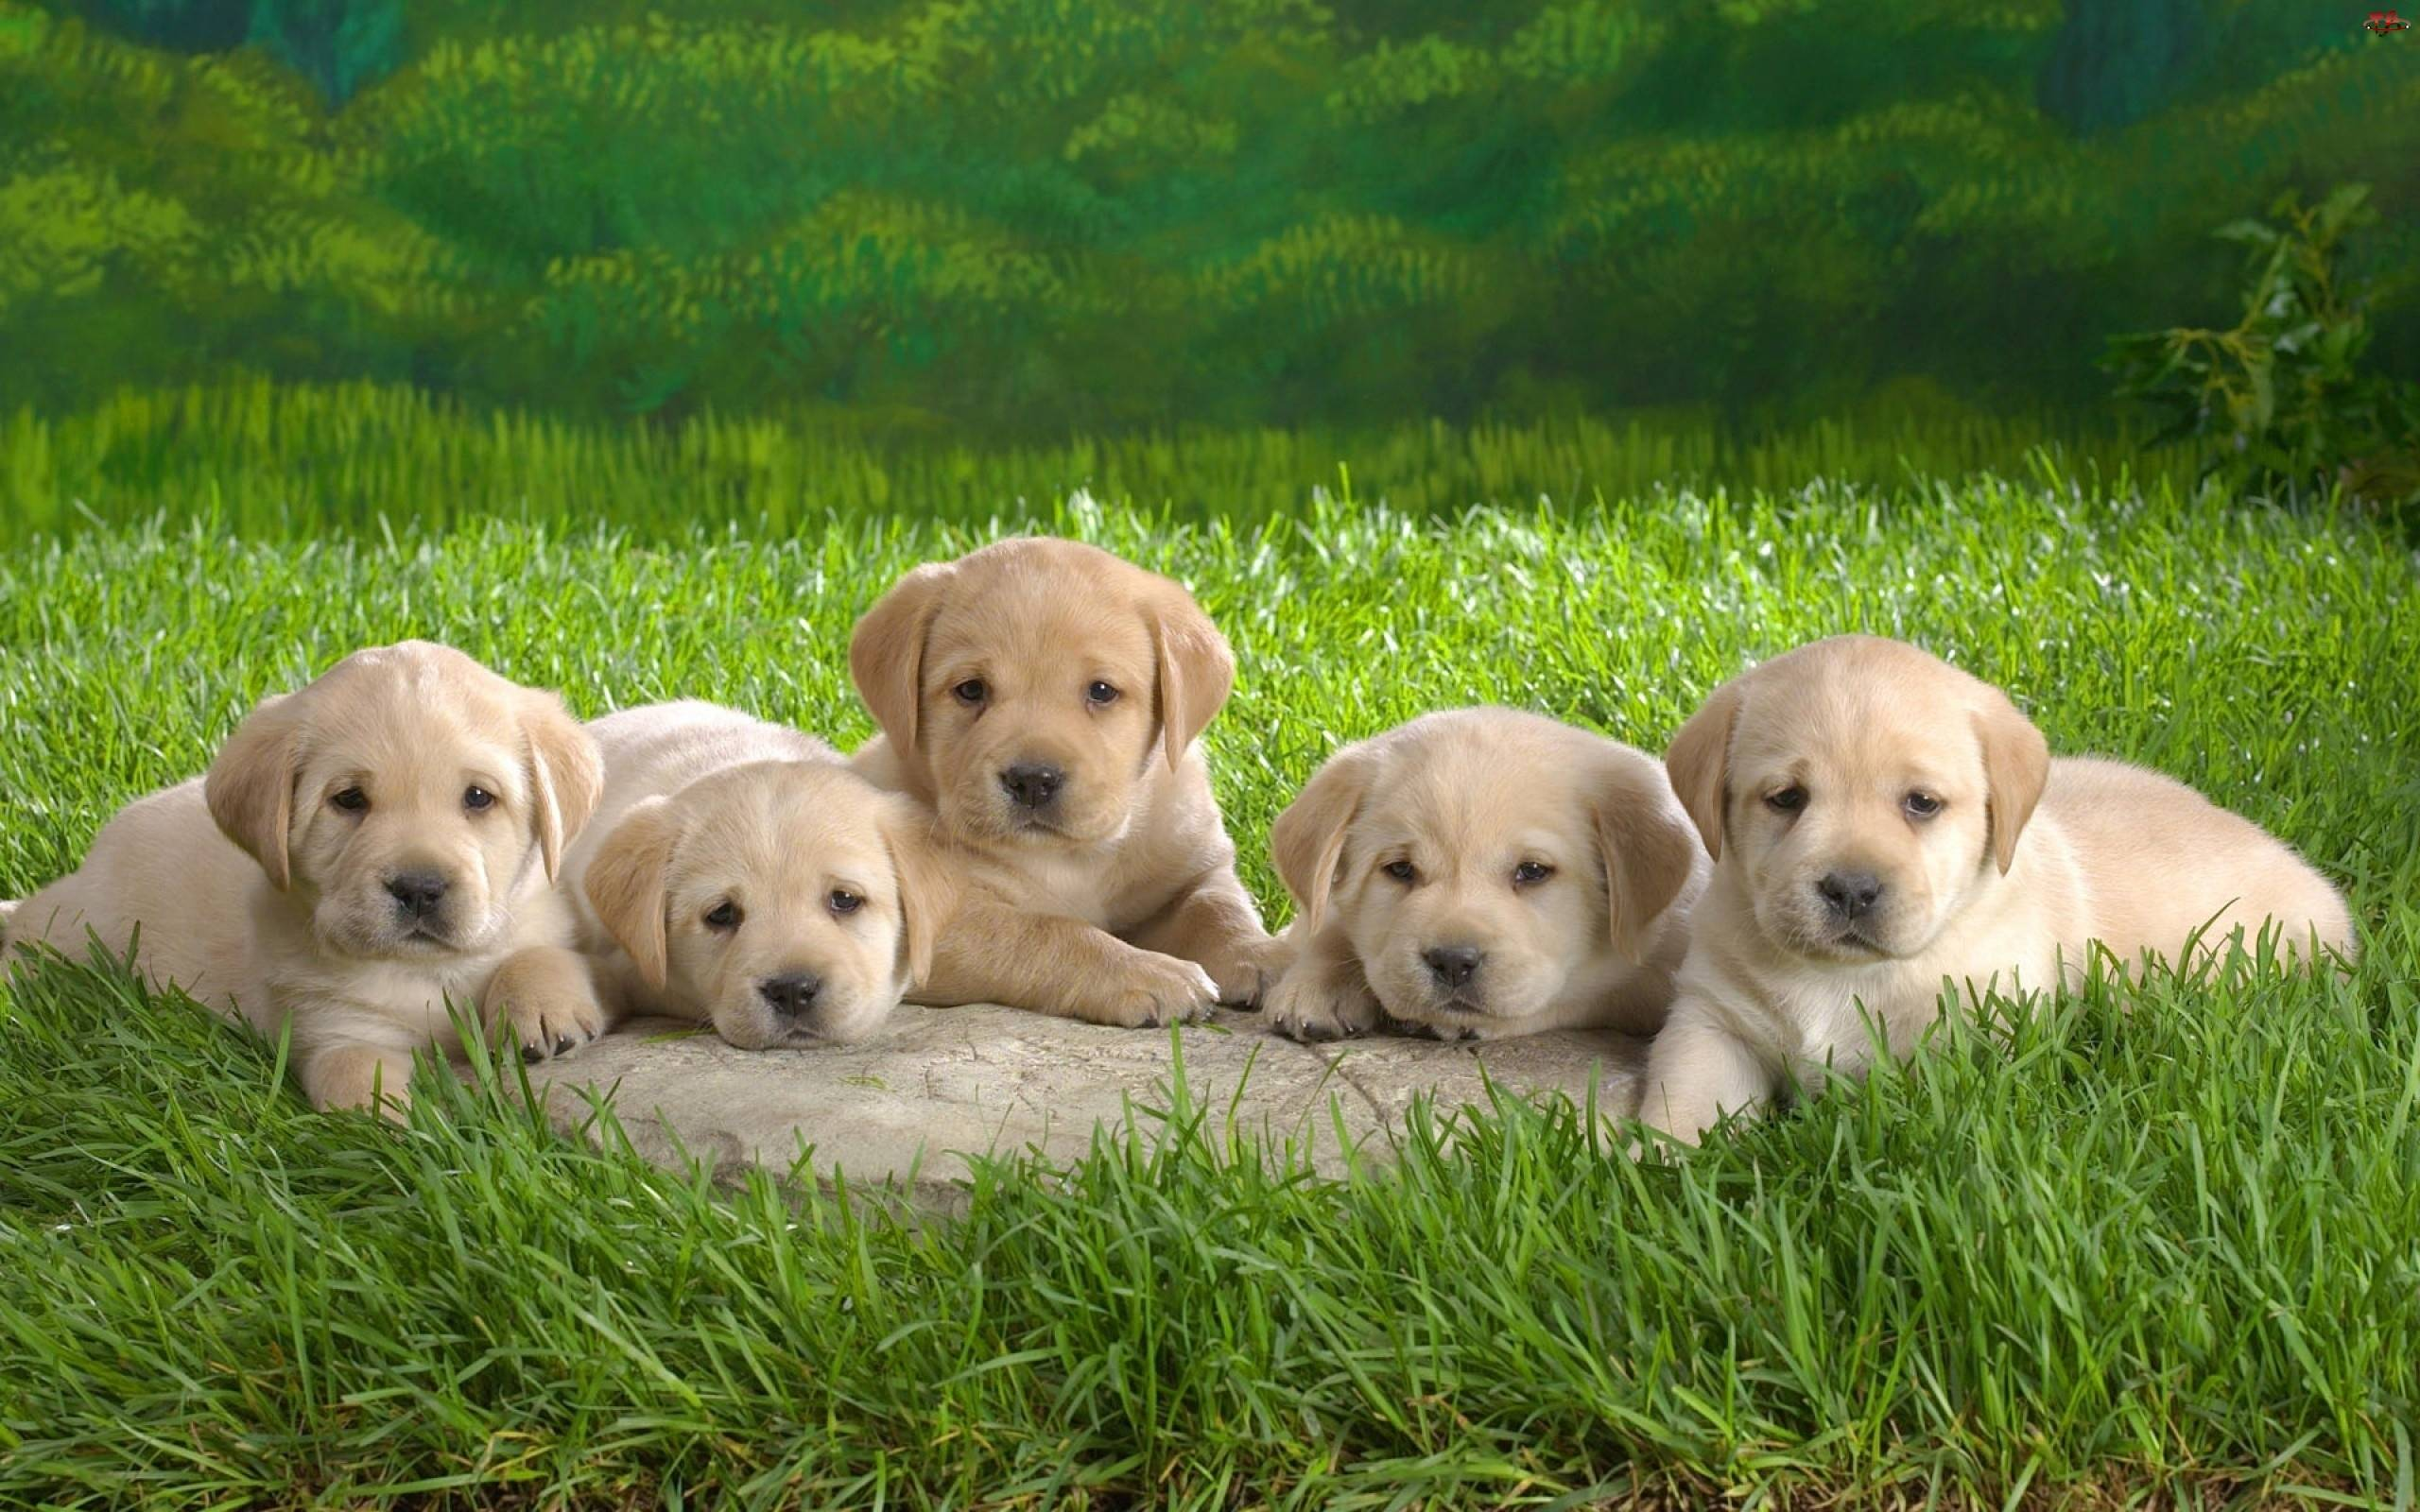 Wallpapers For > Puppies Wallpaper For Desktop